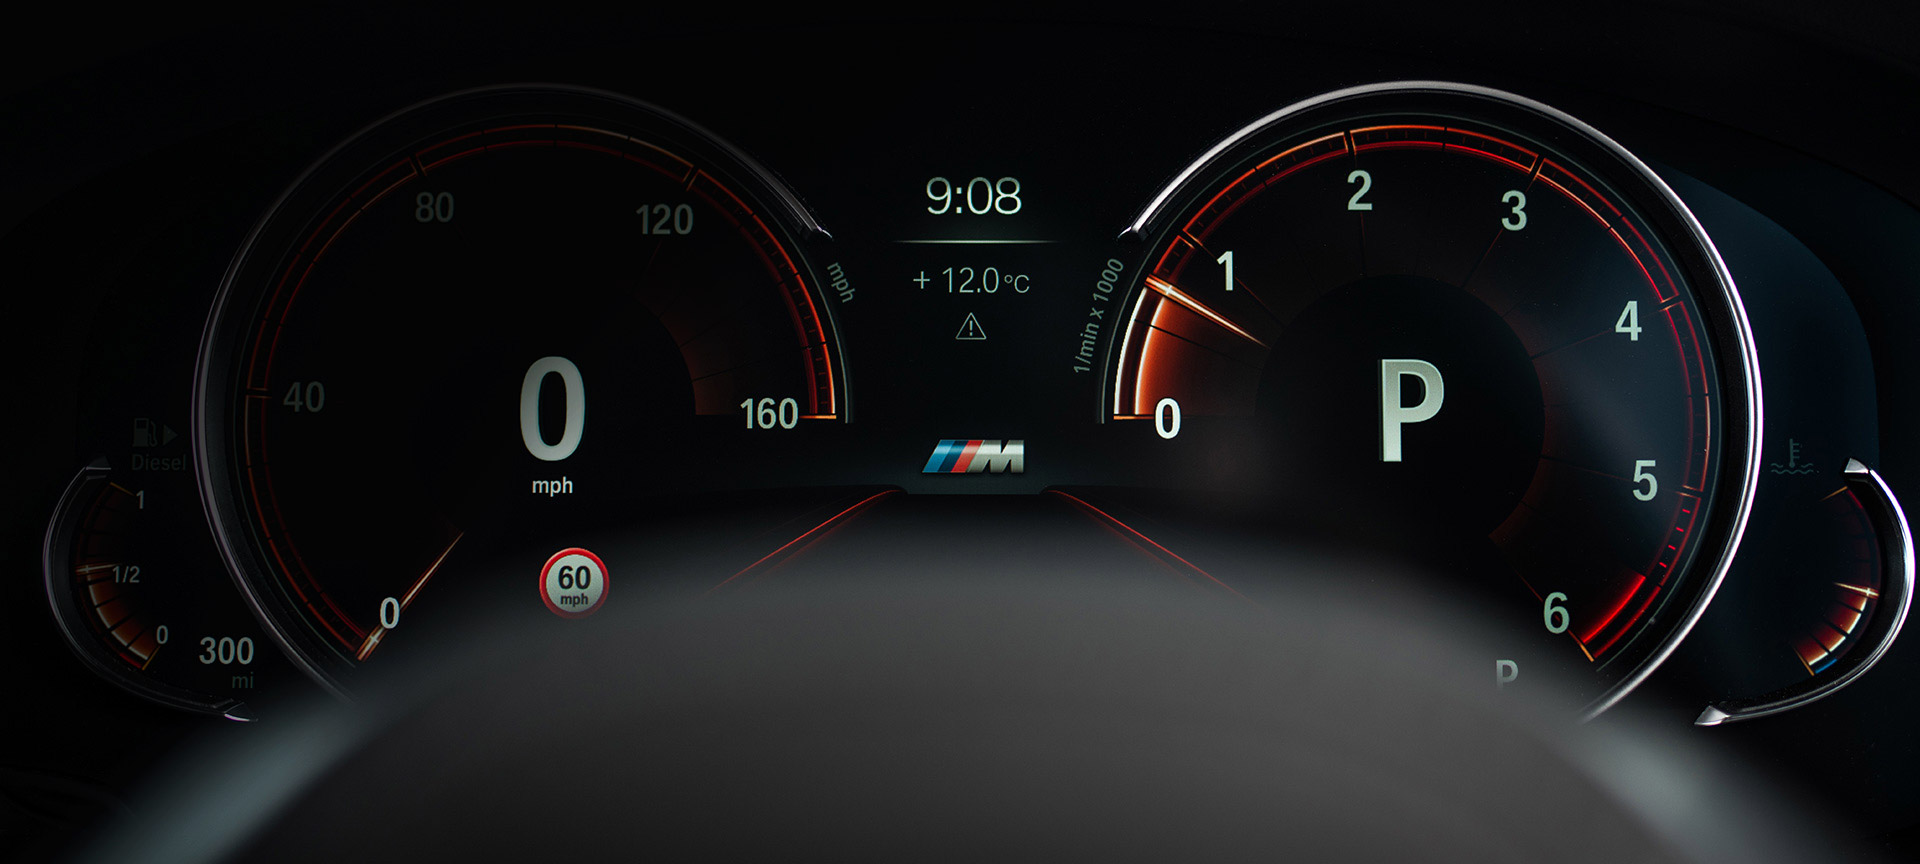 BMW Digital Display